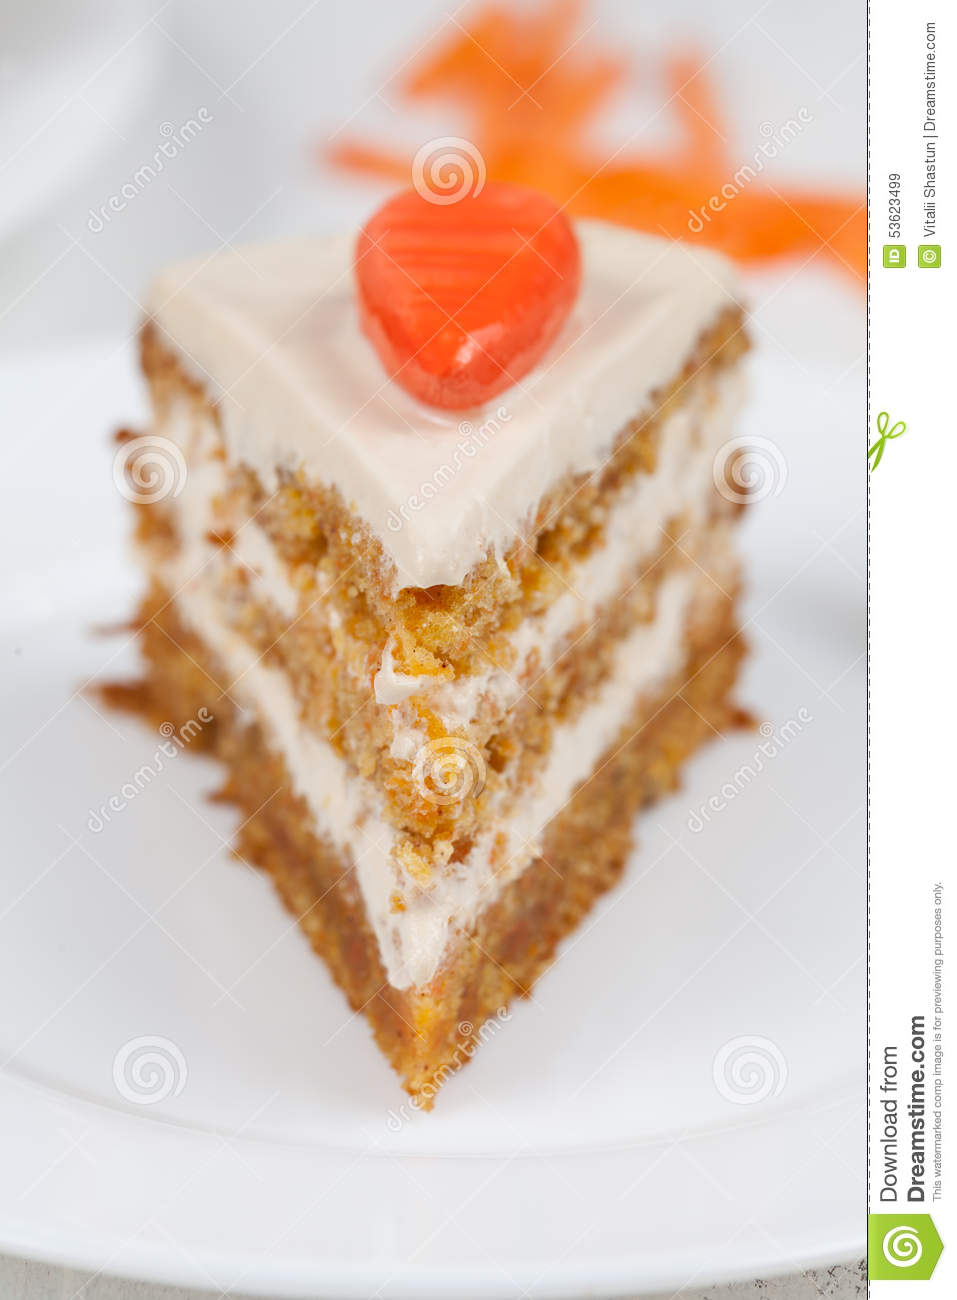 Carrot Cake On White Plate